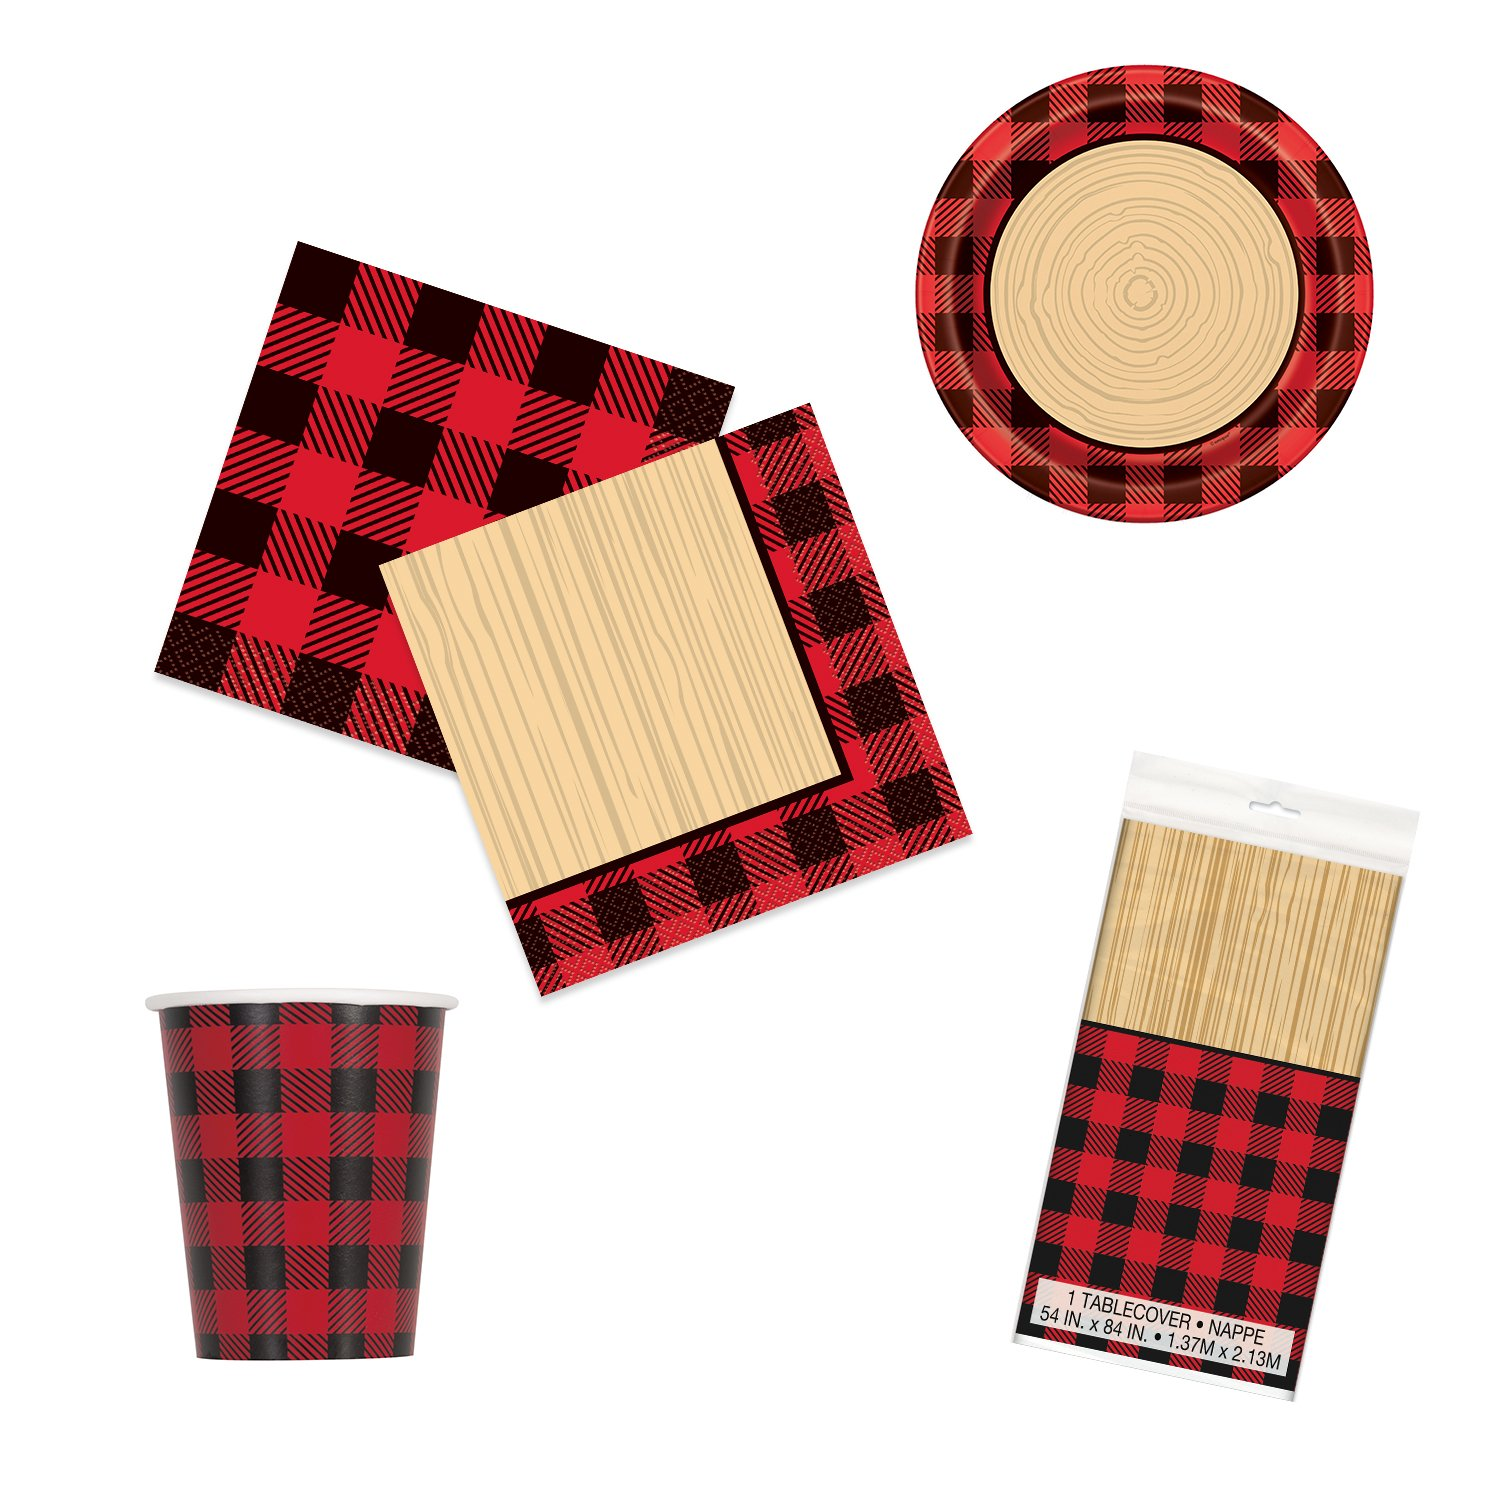 Unique Plaid Lumberjack Party Bundle | Luncheon & Beverage Napkins, Dinner Plates, Table Cover, Cups | Great for Country/Rustic Birthday Themed Parties